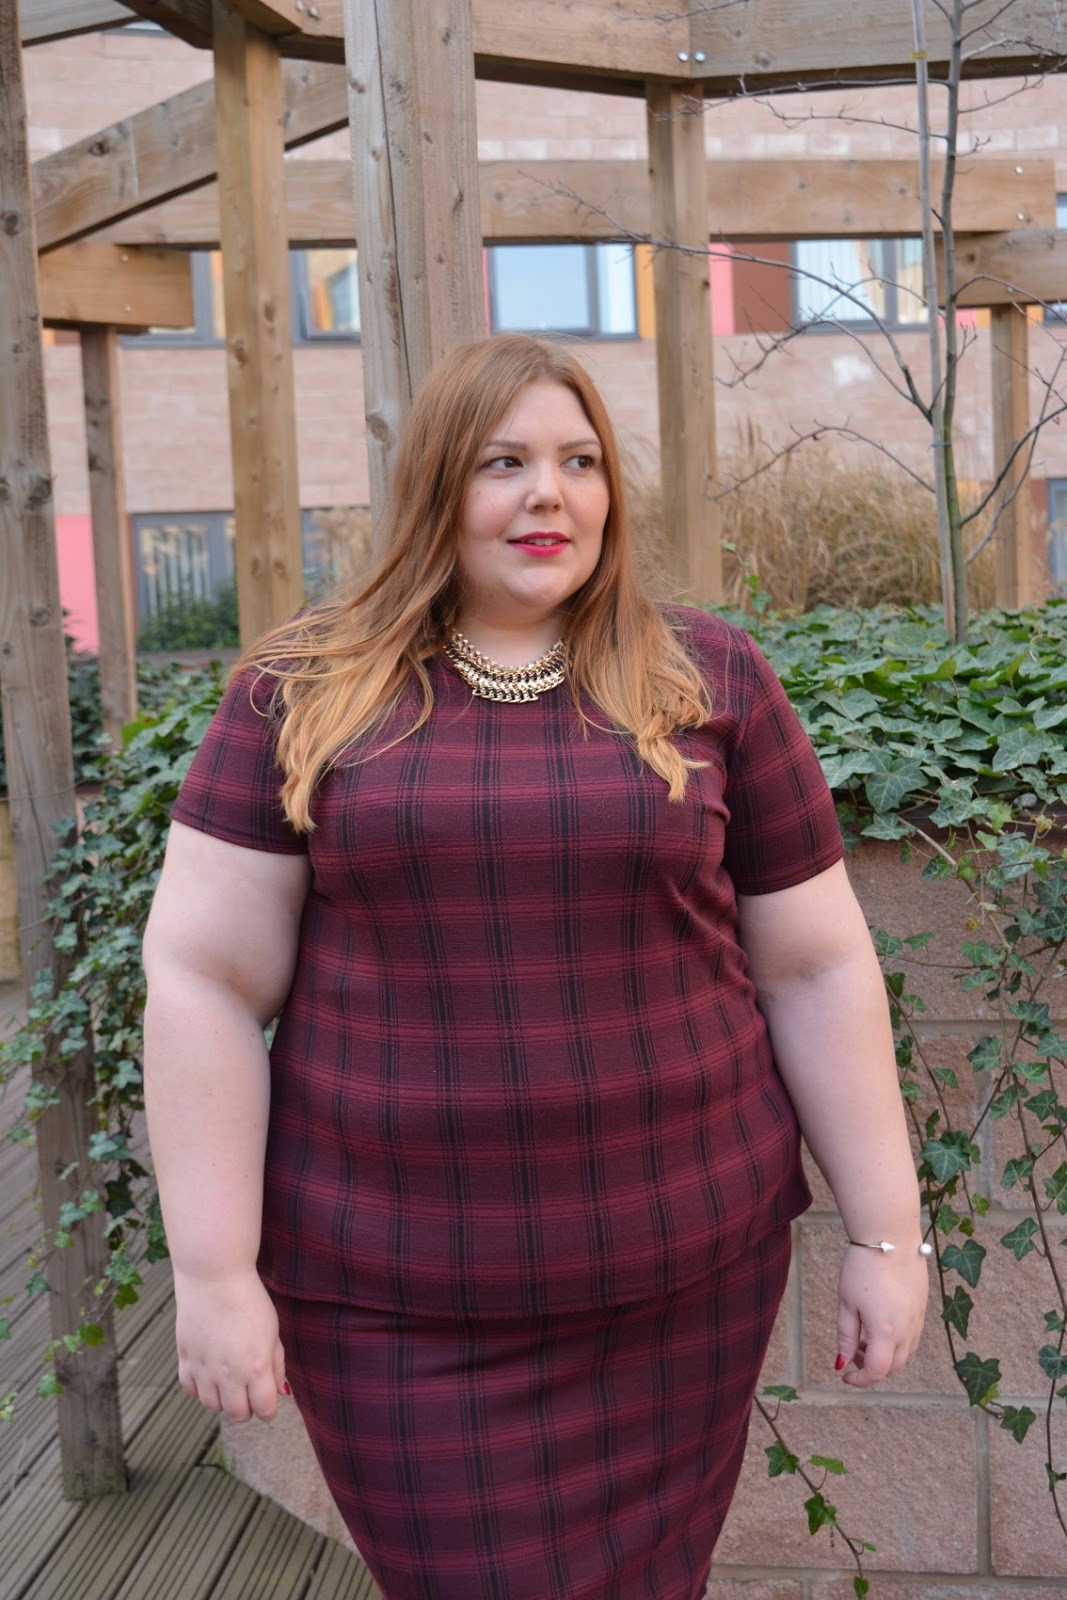 Bbw dating site instagram